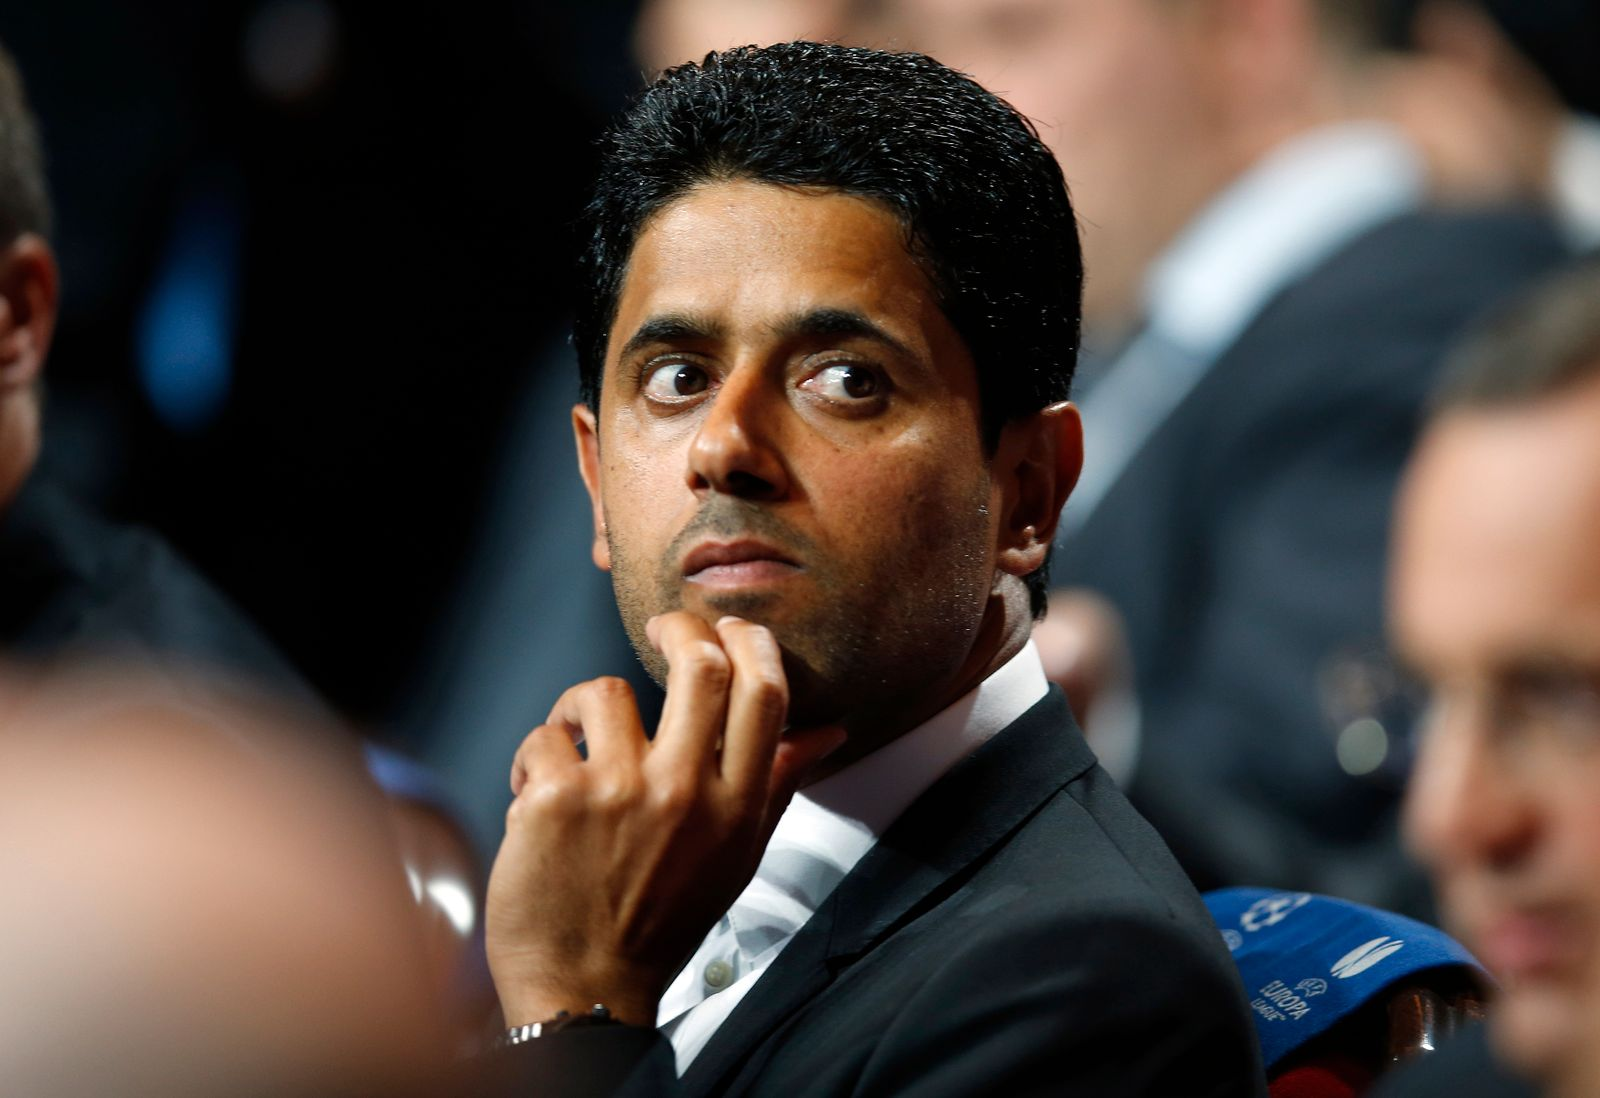 Paris St Germain's club president Nasser al-Khelaifi is seen during the draw ceremony for the 2014/2015 Champions League soccer competition in Monaco